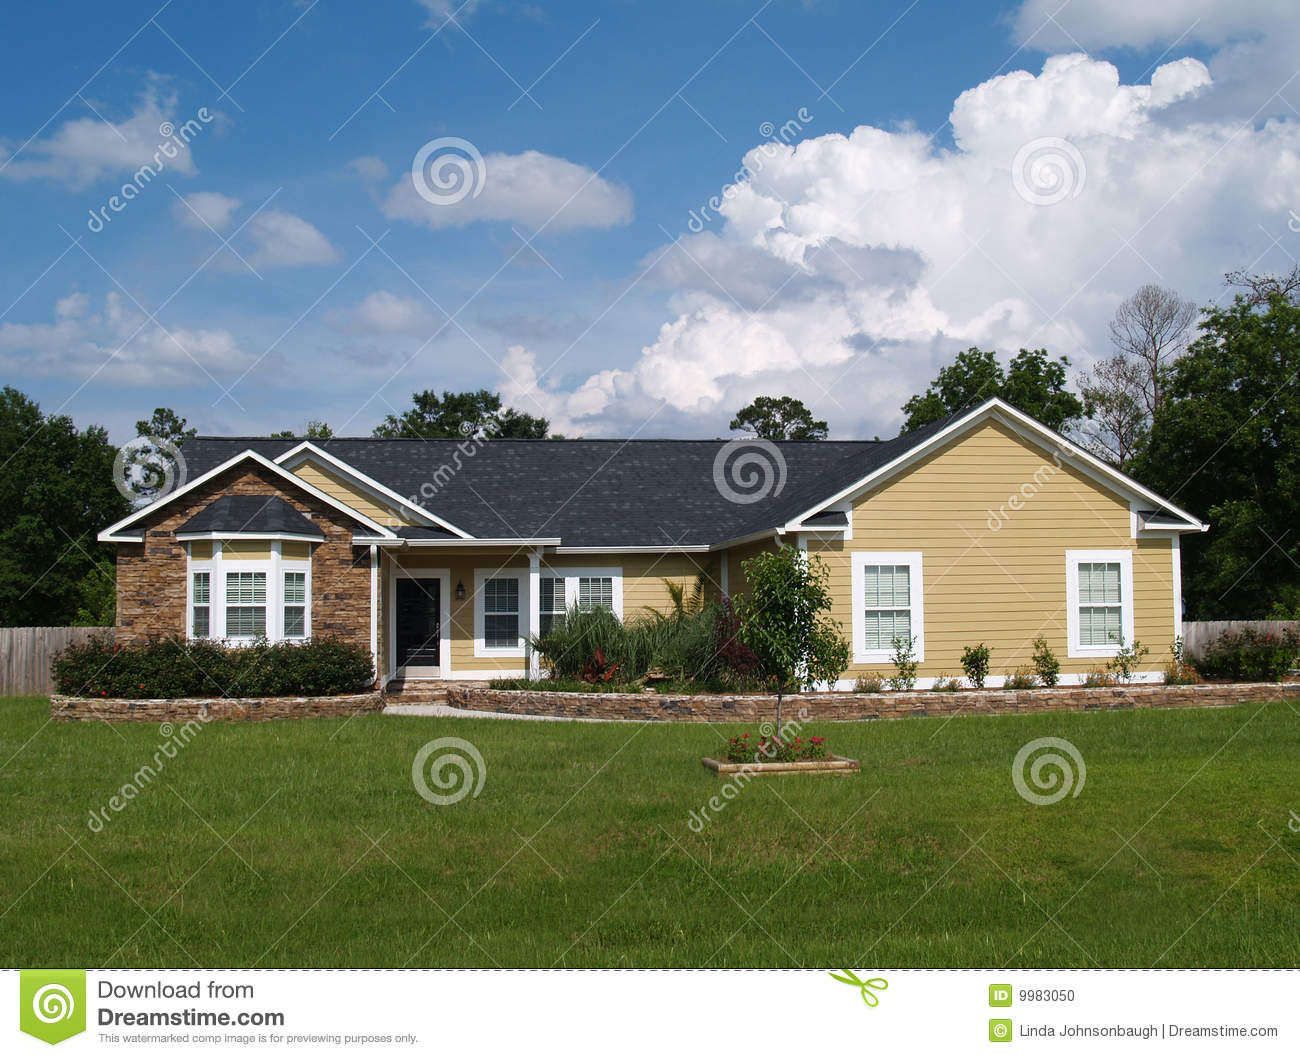 One Story Residential Home Stock Photo Image Of Outside